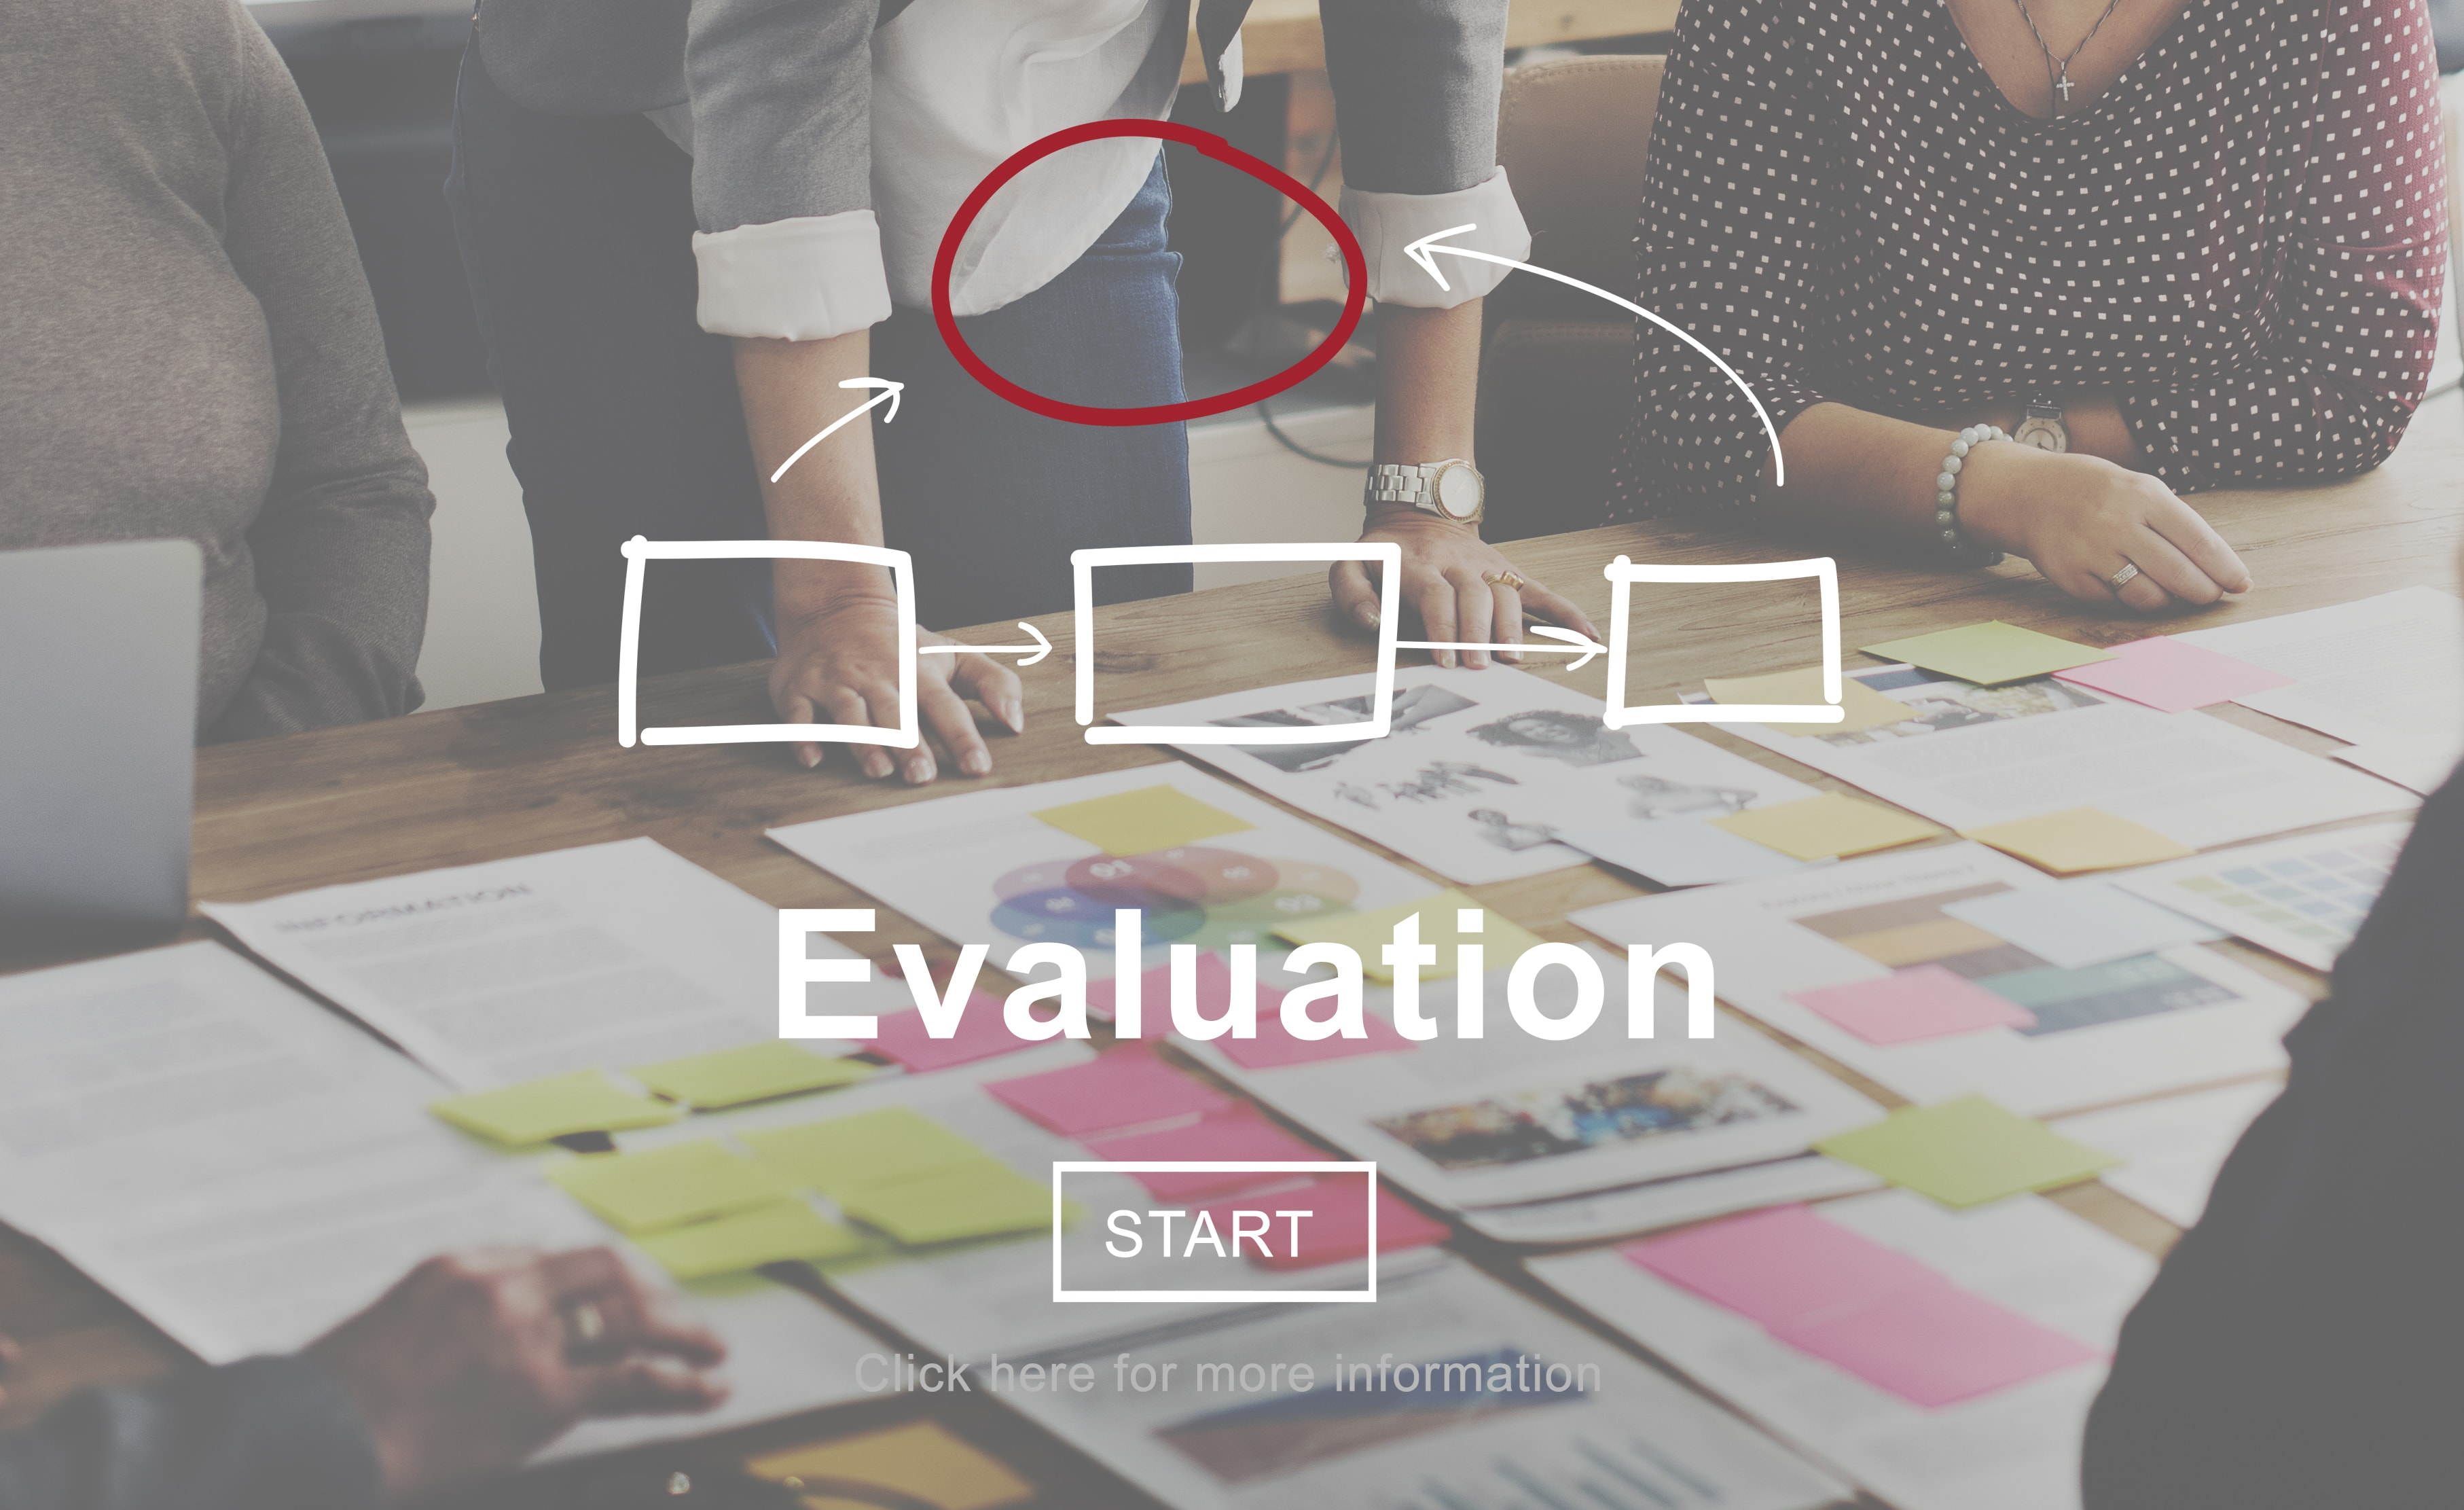 check the post:Evaluation: The First and Final Steps in Custom Software Development for a description of the image